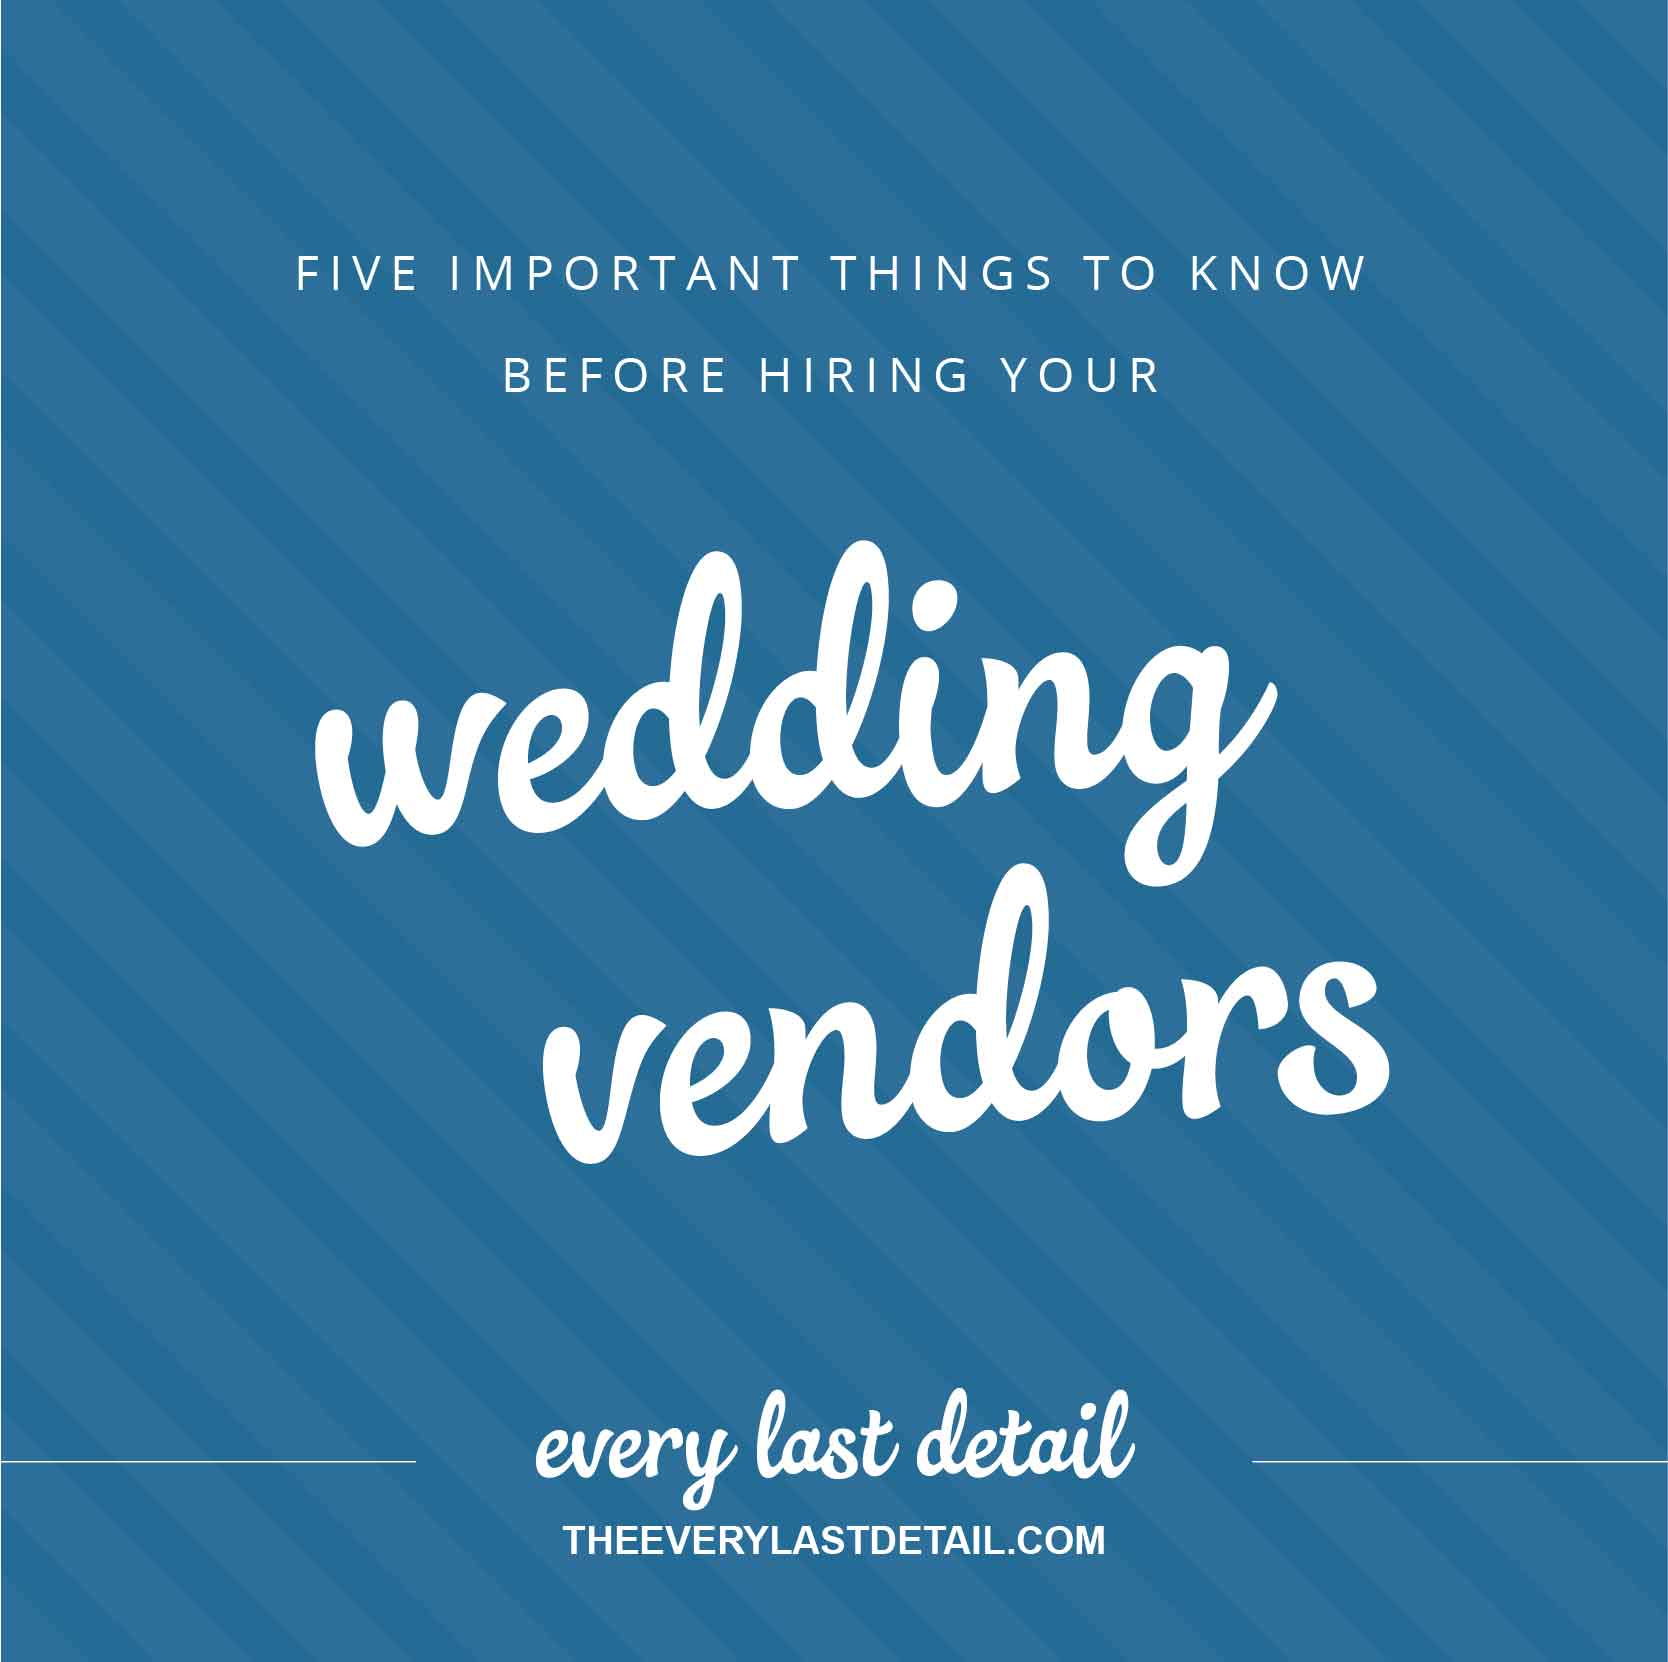 5 Important Things To Know Before Hiring Your Wedding Vendors via TheELD.com